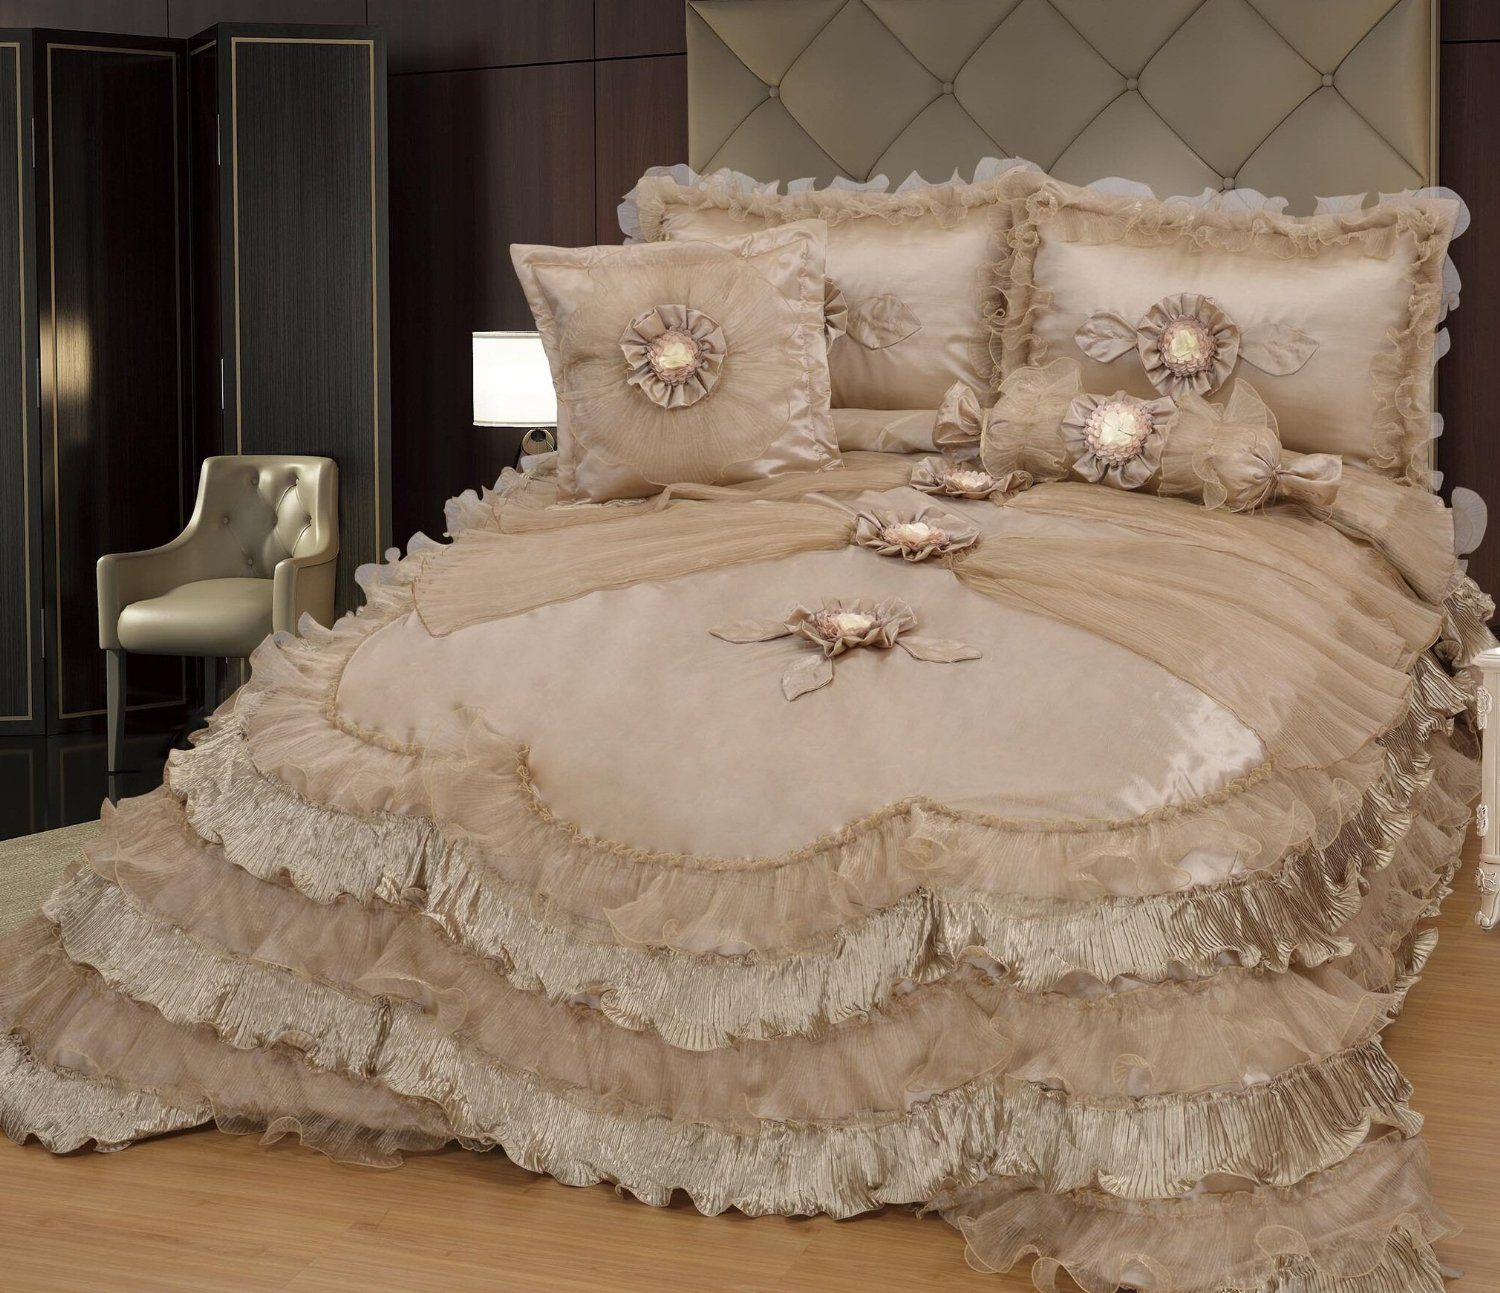 Brandream Champagne Lace Ruffle Comforter Set Luxury Noble Bed Comforter Sets Queen/King: Amazon.ca: Home & Kitchen